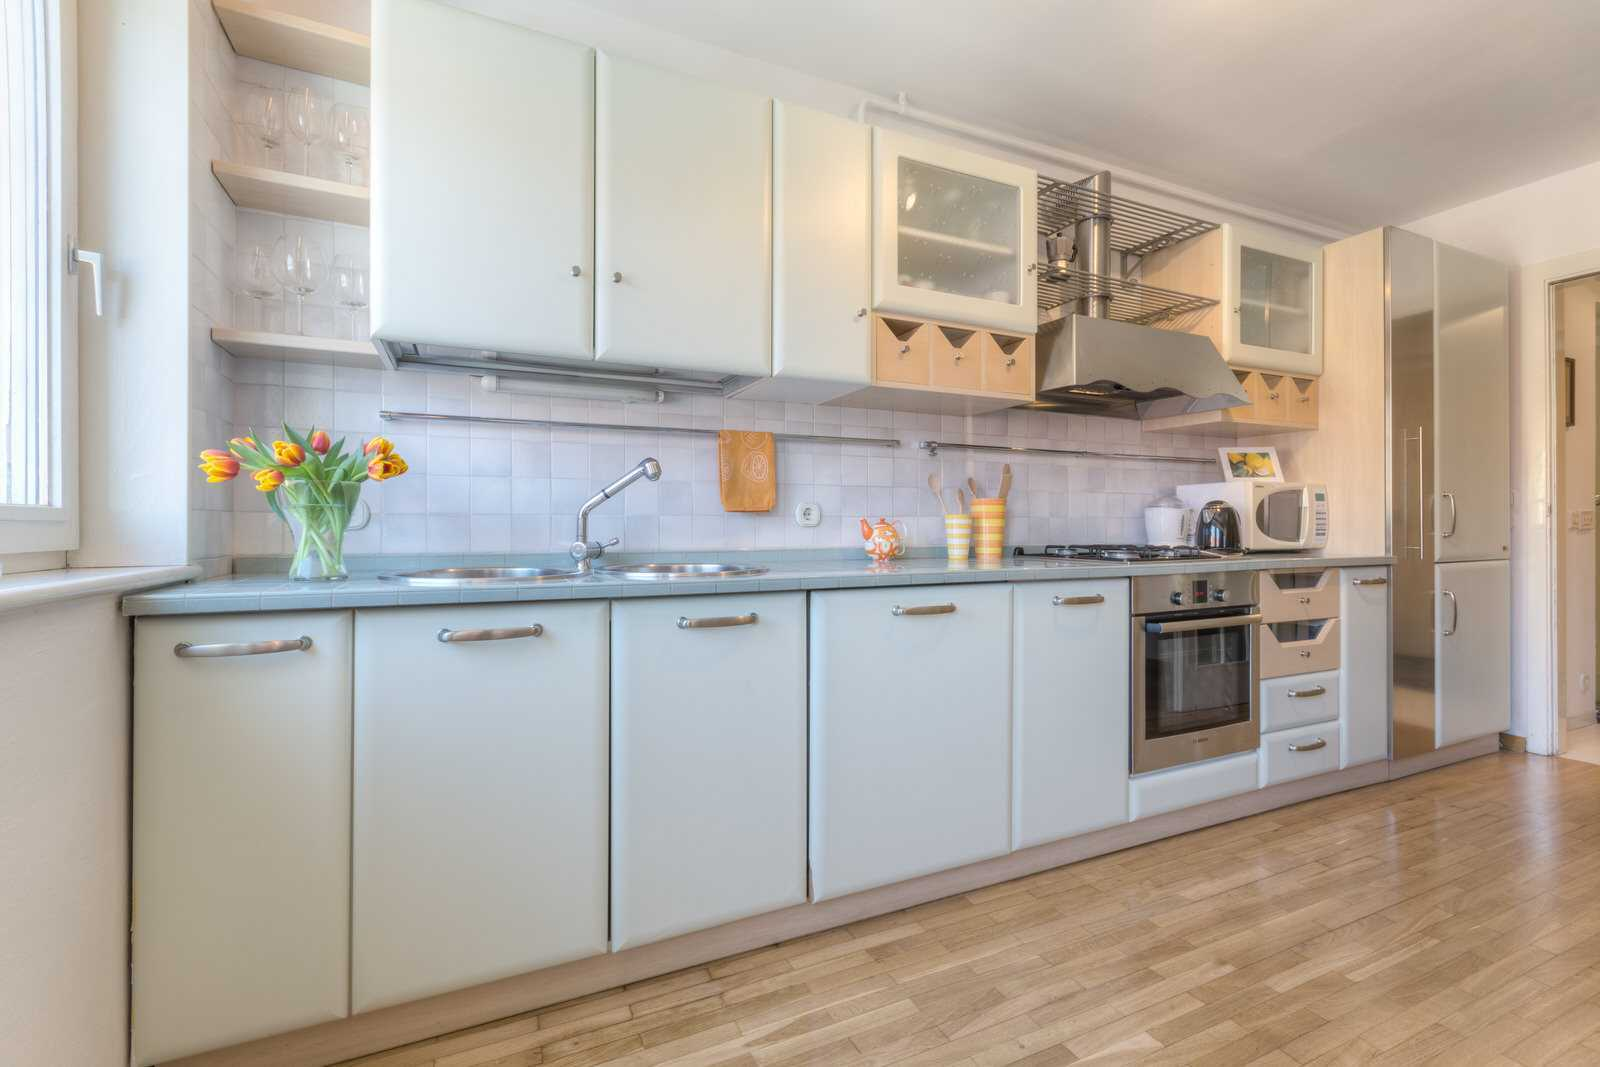 Ljubljana rental apartment Dalmatinova - fully equipped kitchen with a dishwasher, oven, fridge, freezer etc.